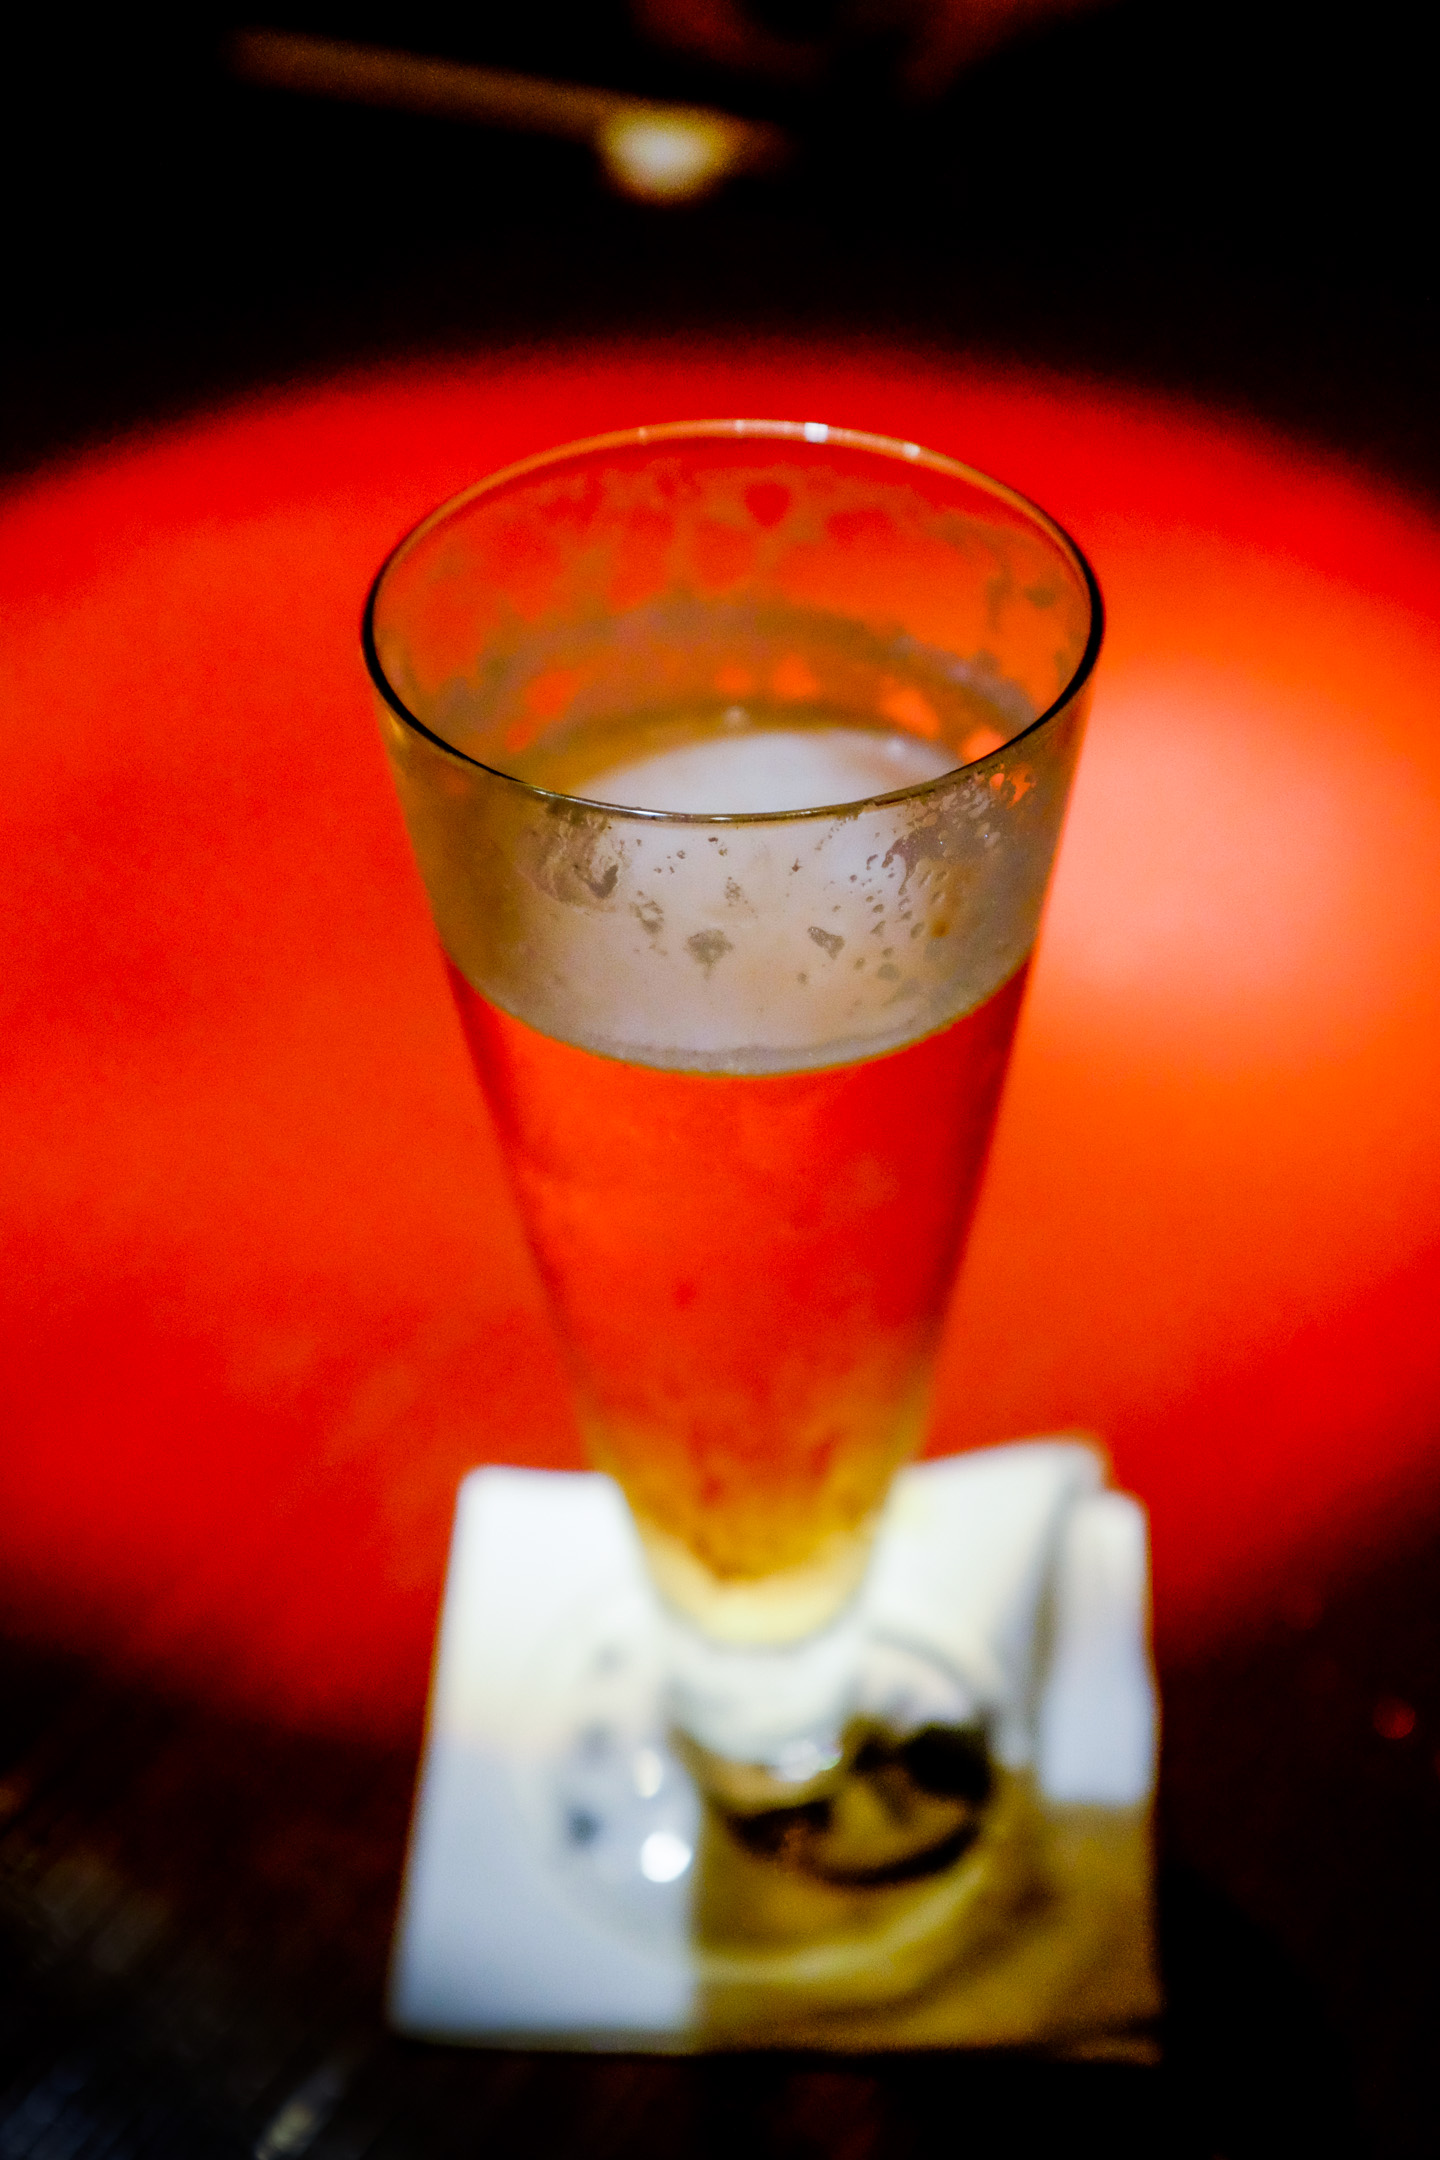 Fujifilm X100S - 1/100 - f/2.8 - iso5000 An ode to beer in the land of the rising sun